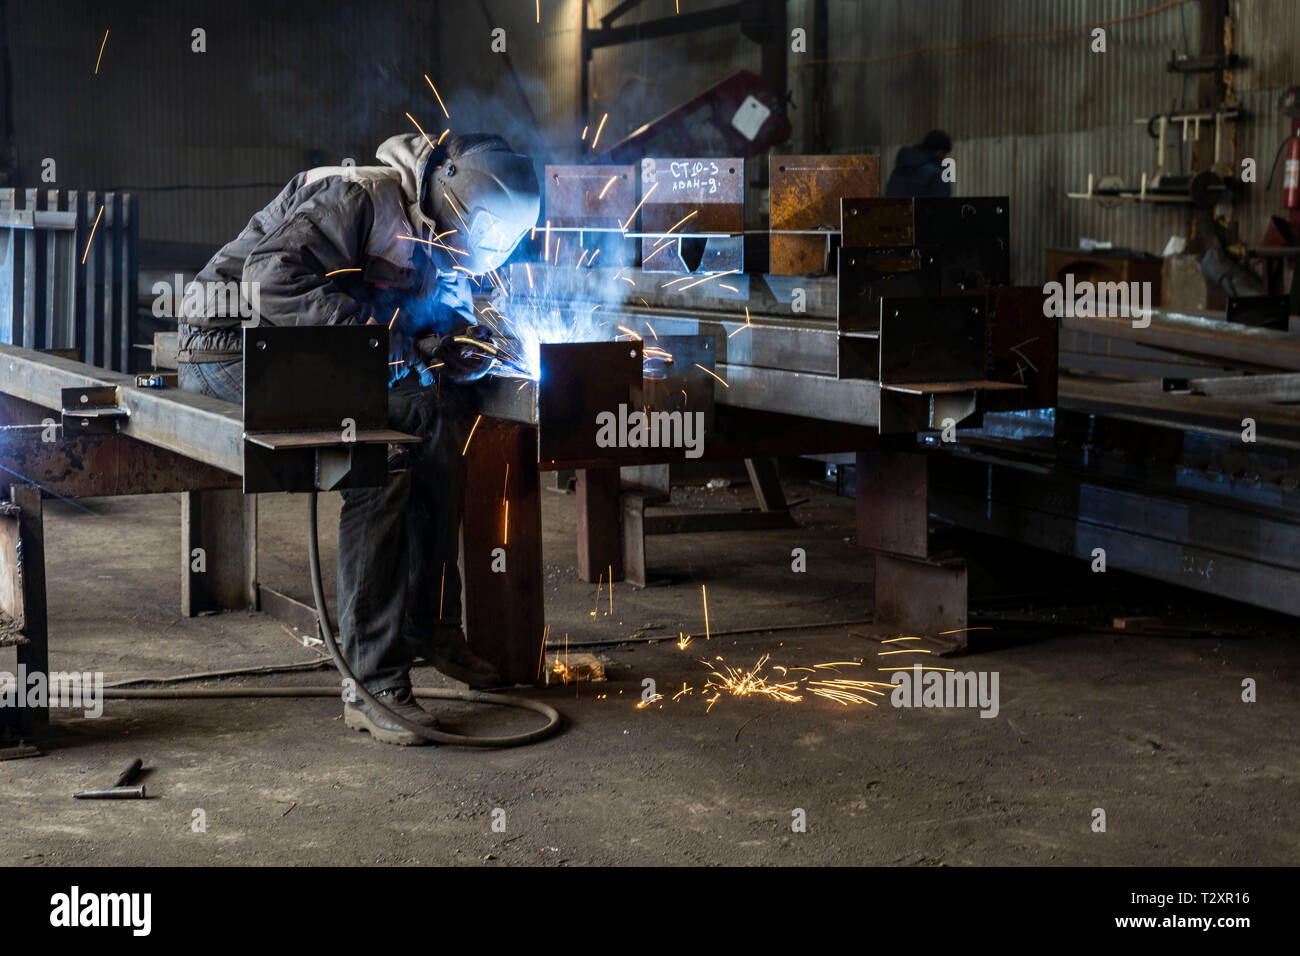 Welding with sparks by Process fluxed cored arc welding ,Industrial